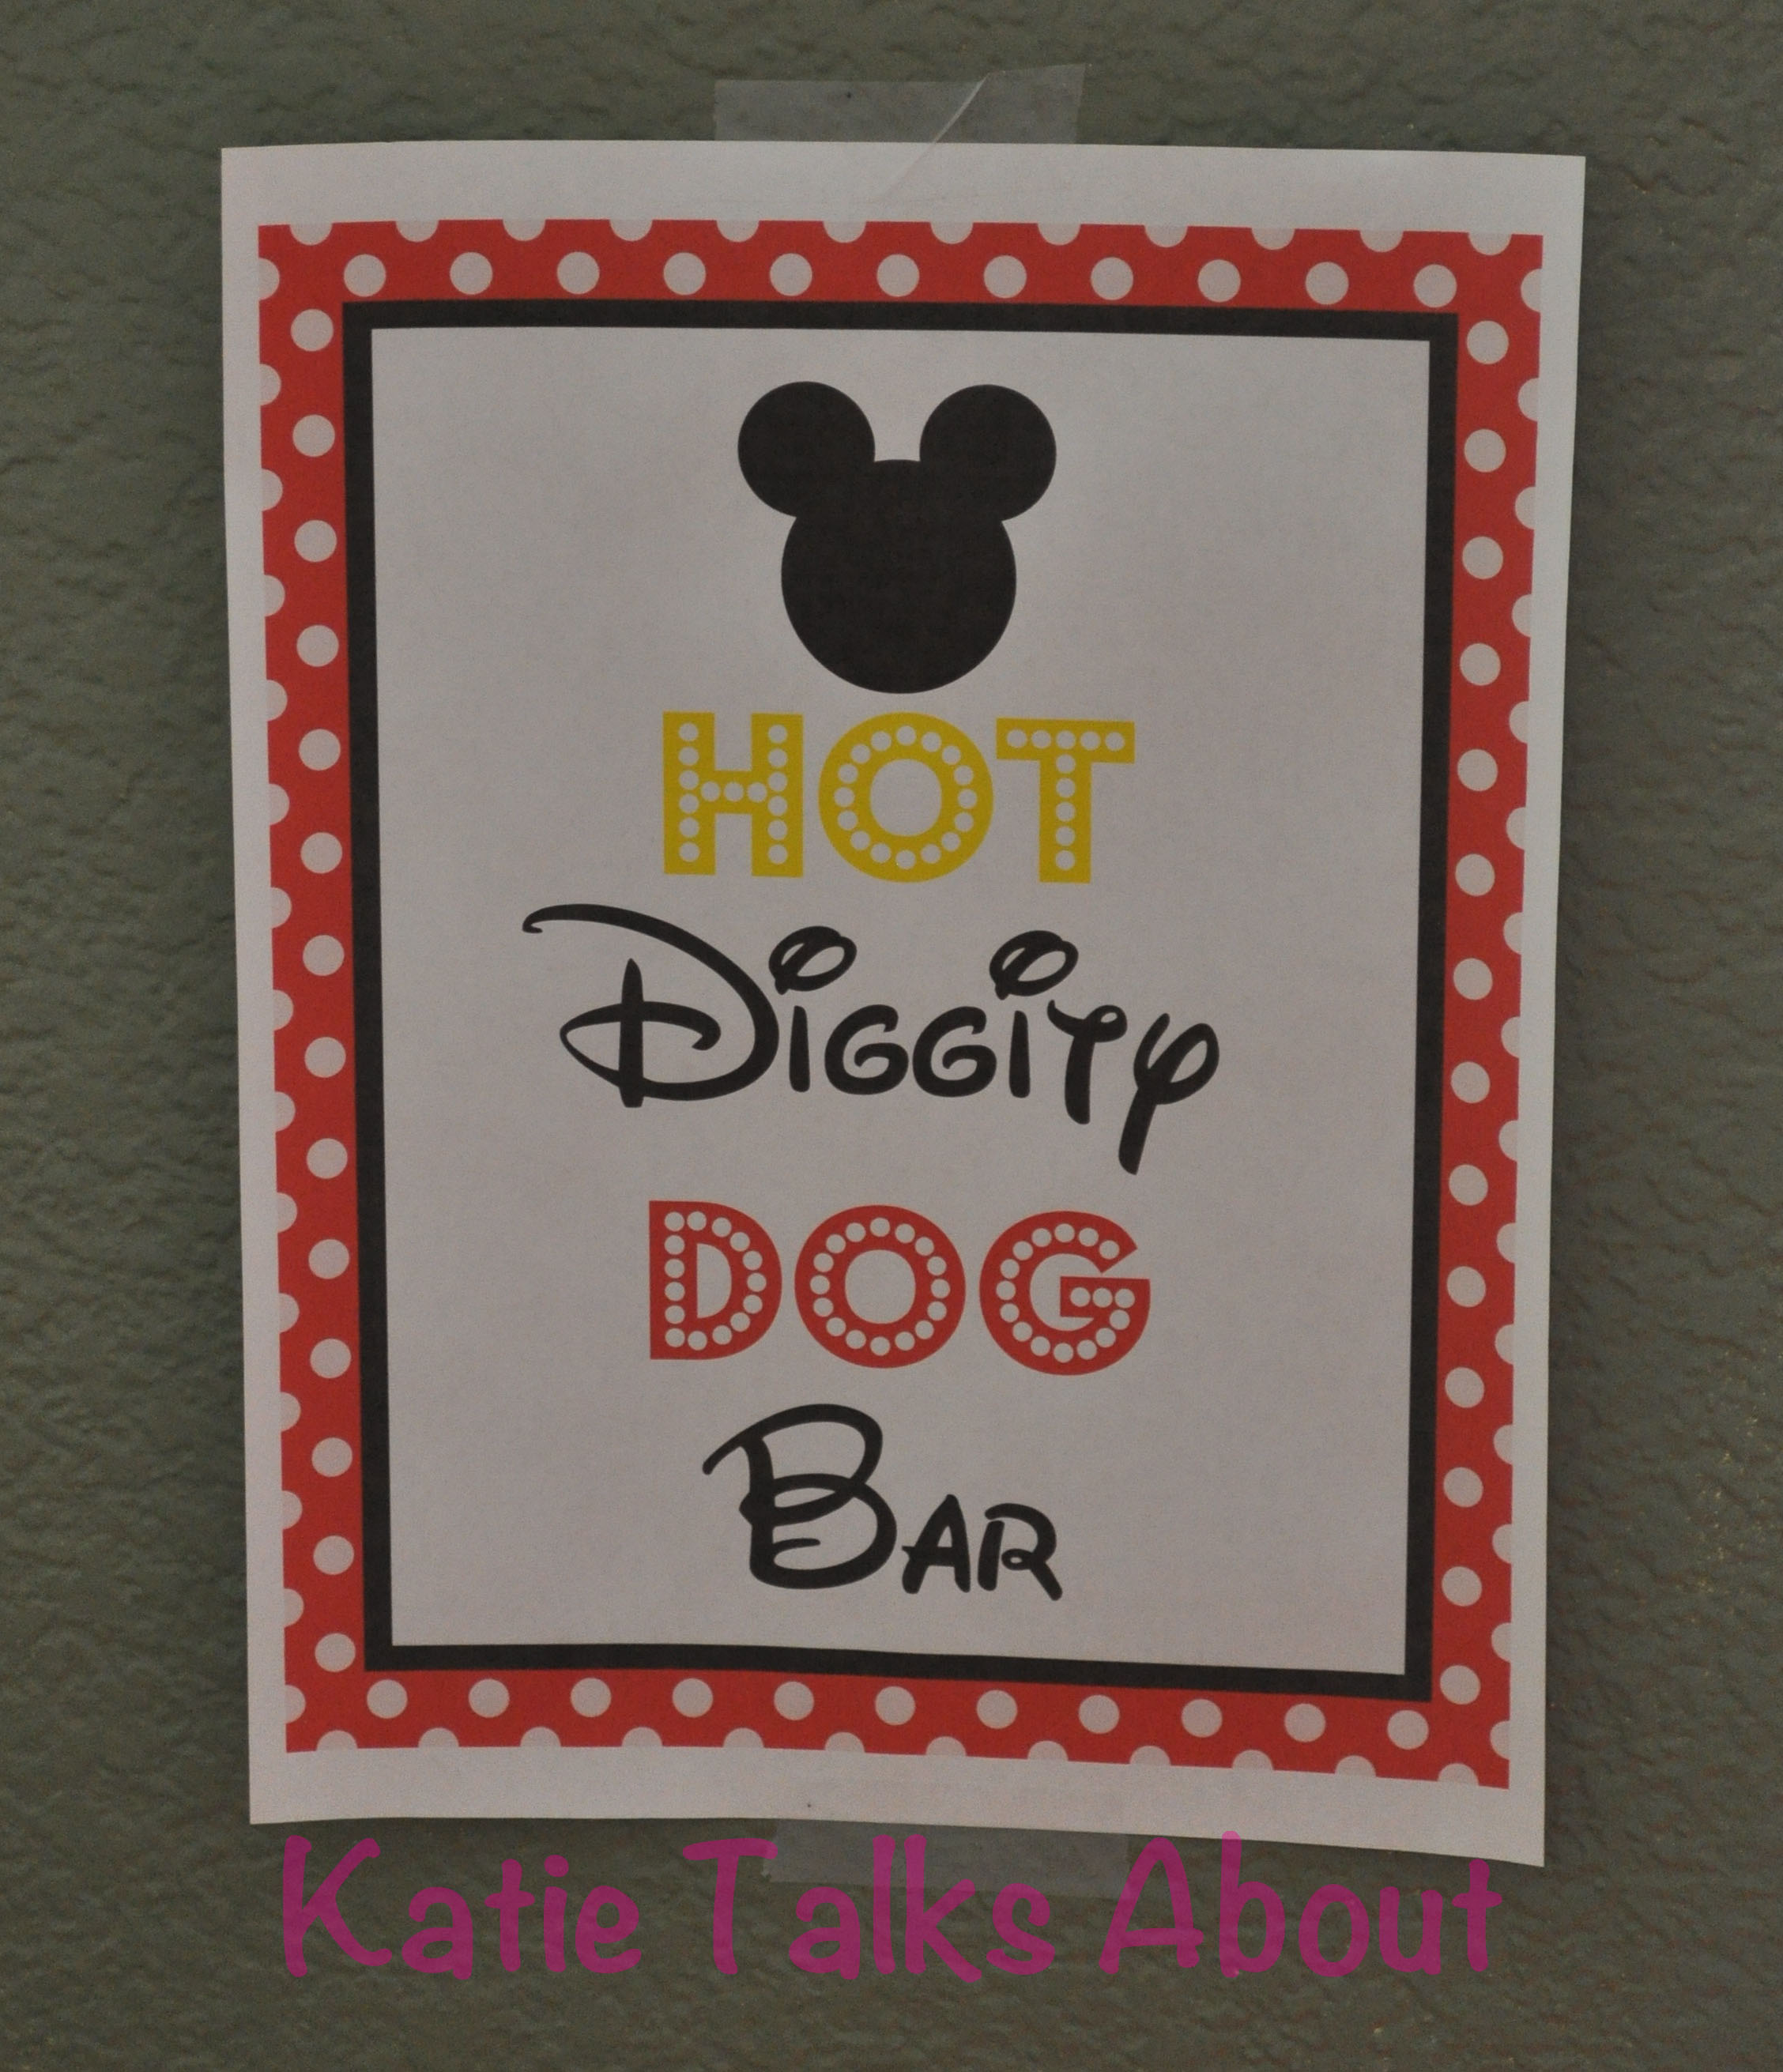 picture regarding Hot Diggity Dog Bar Free Printable called Celebrating our #DisneySide!